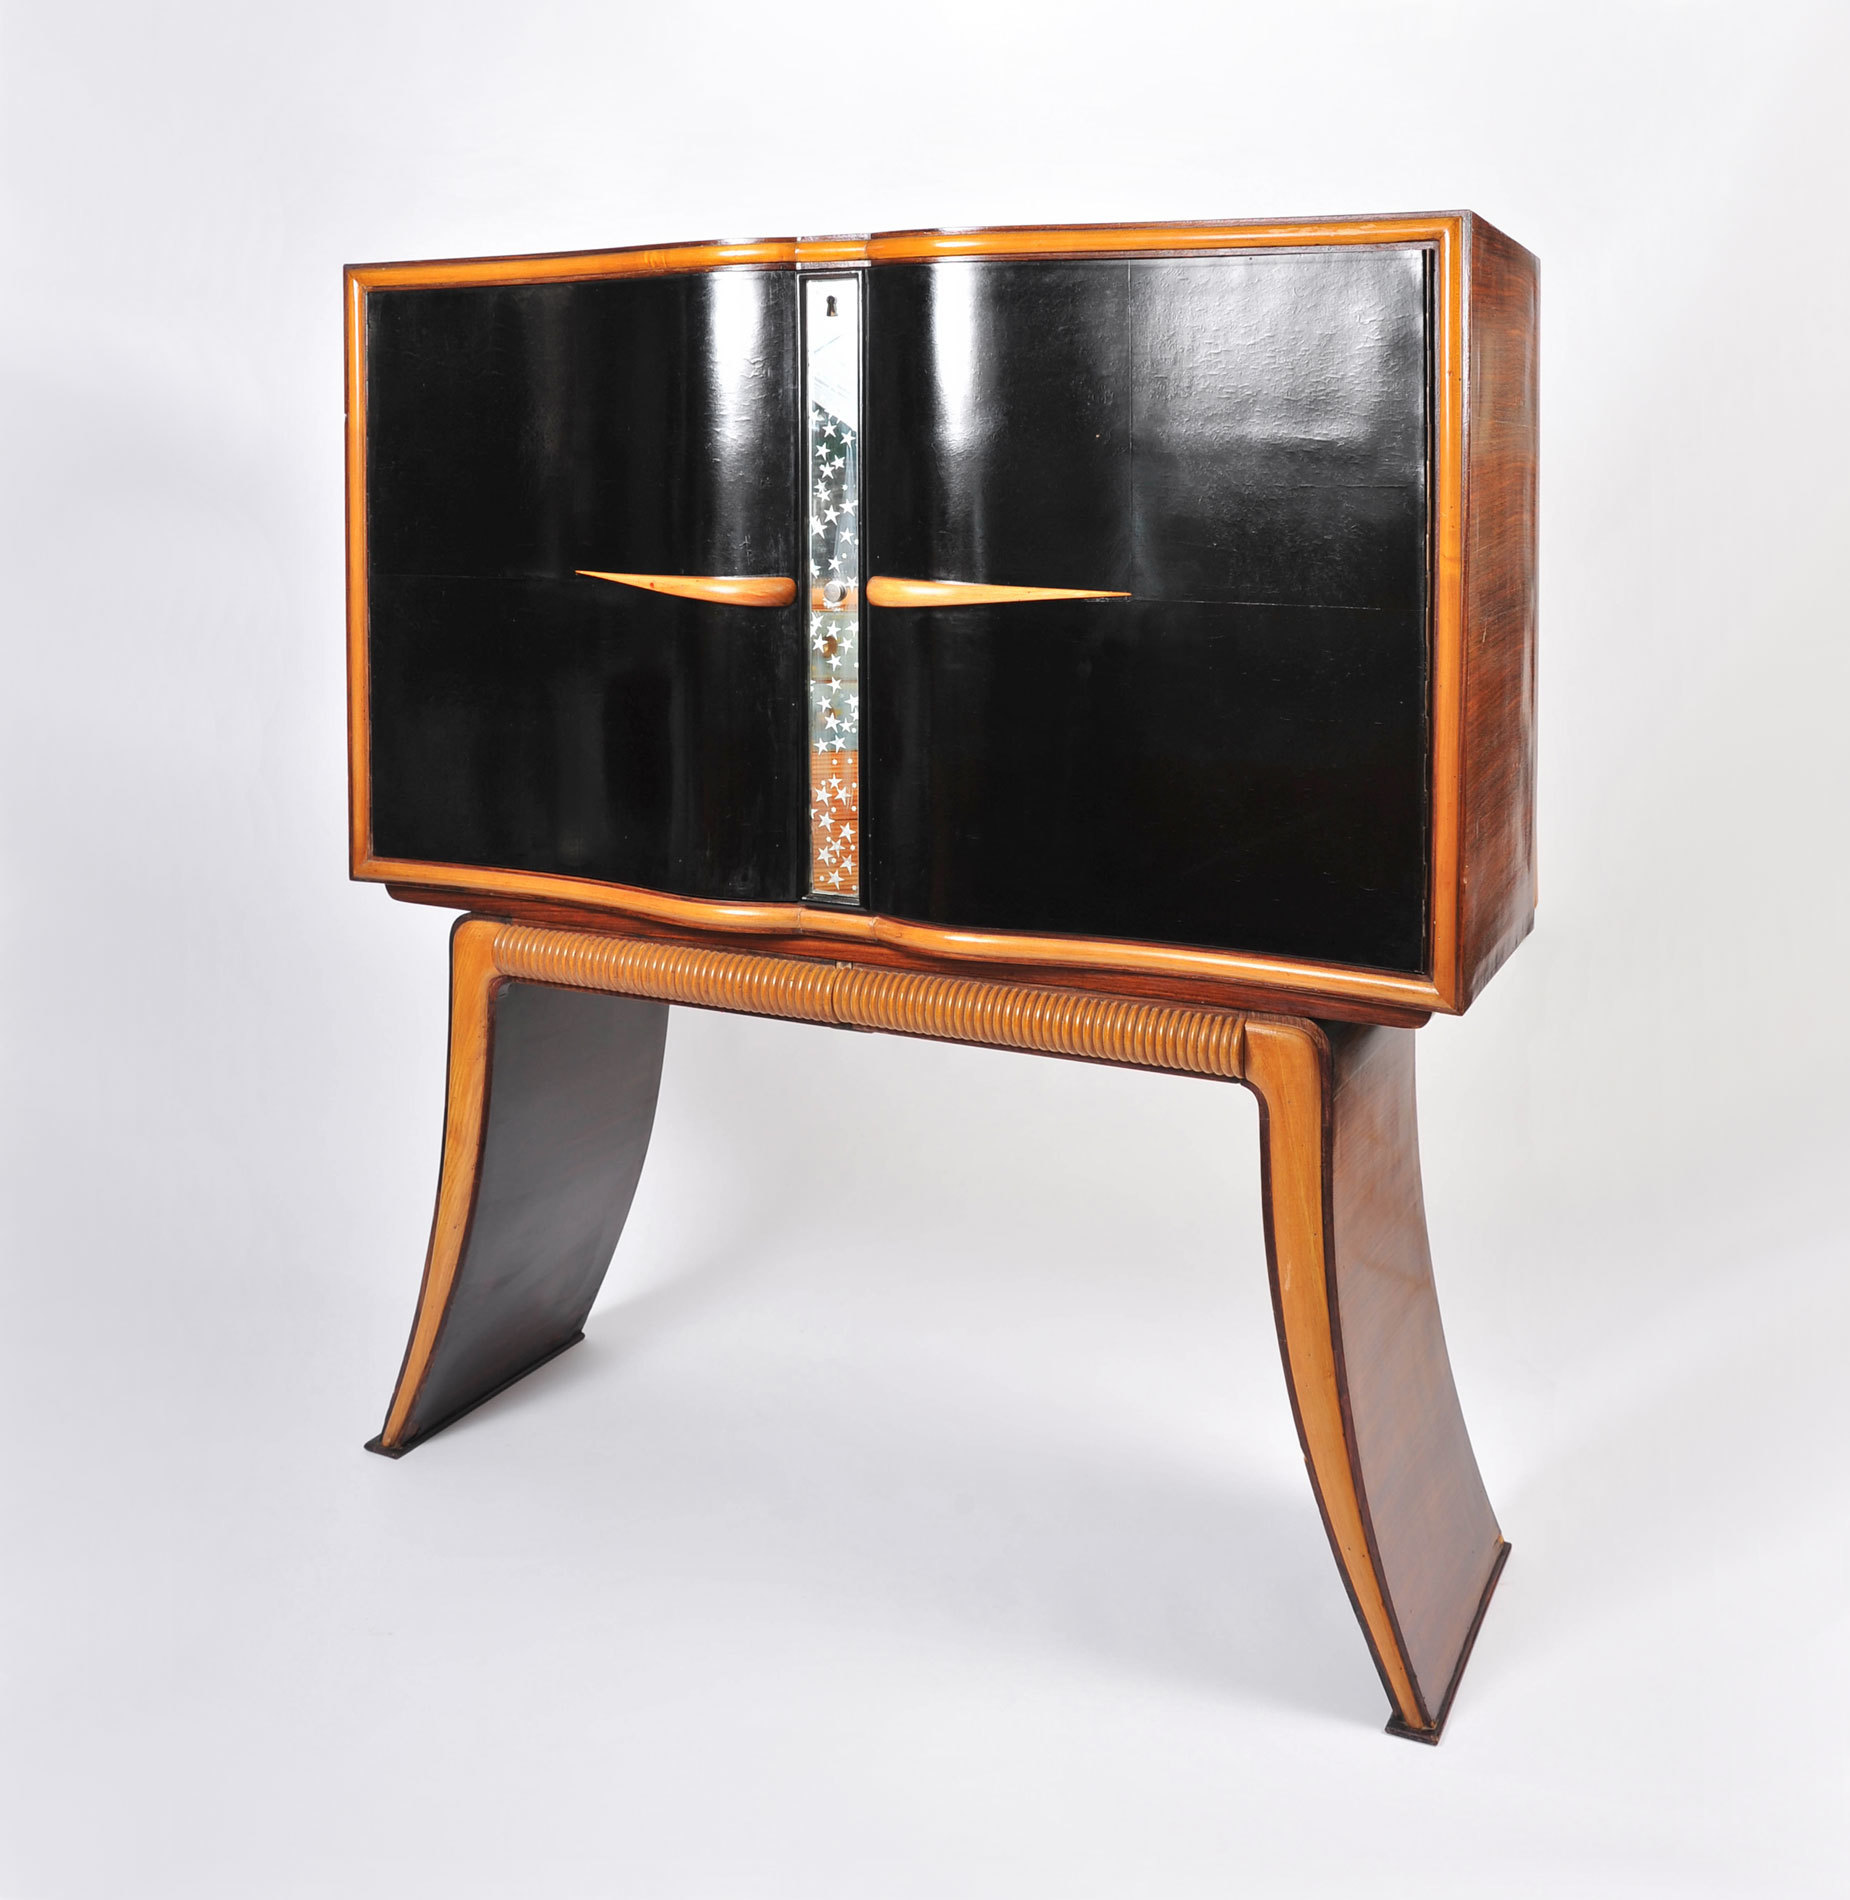 1950S Cocktail Cabinet 03